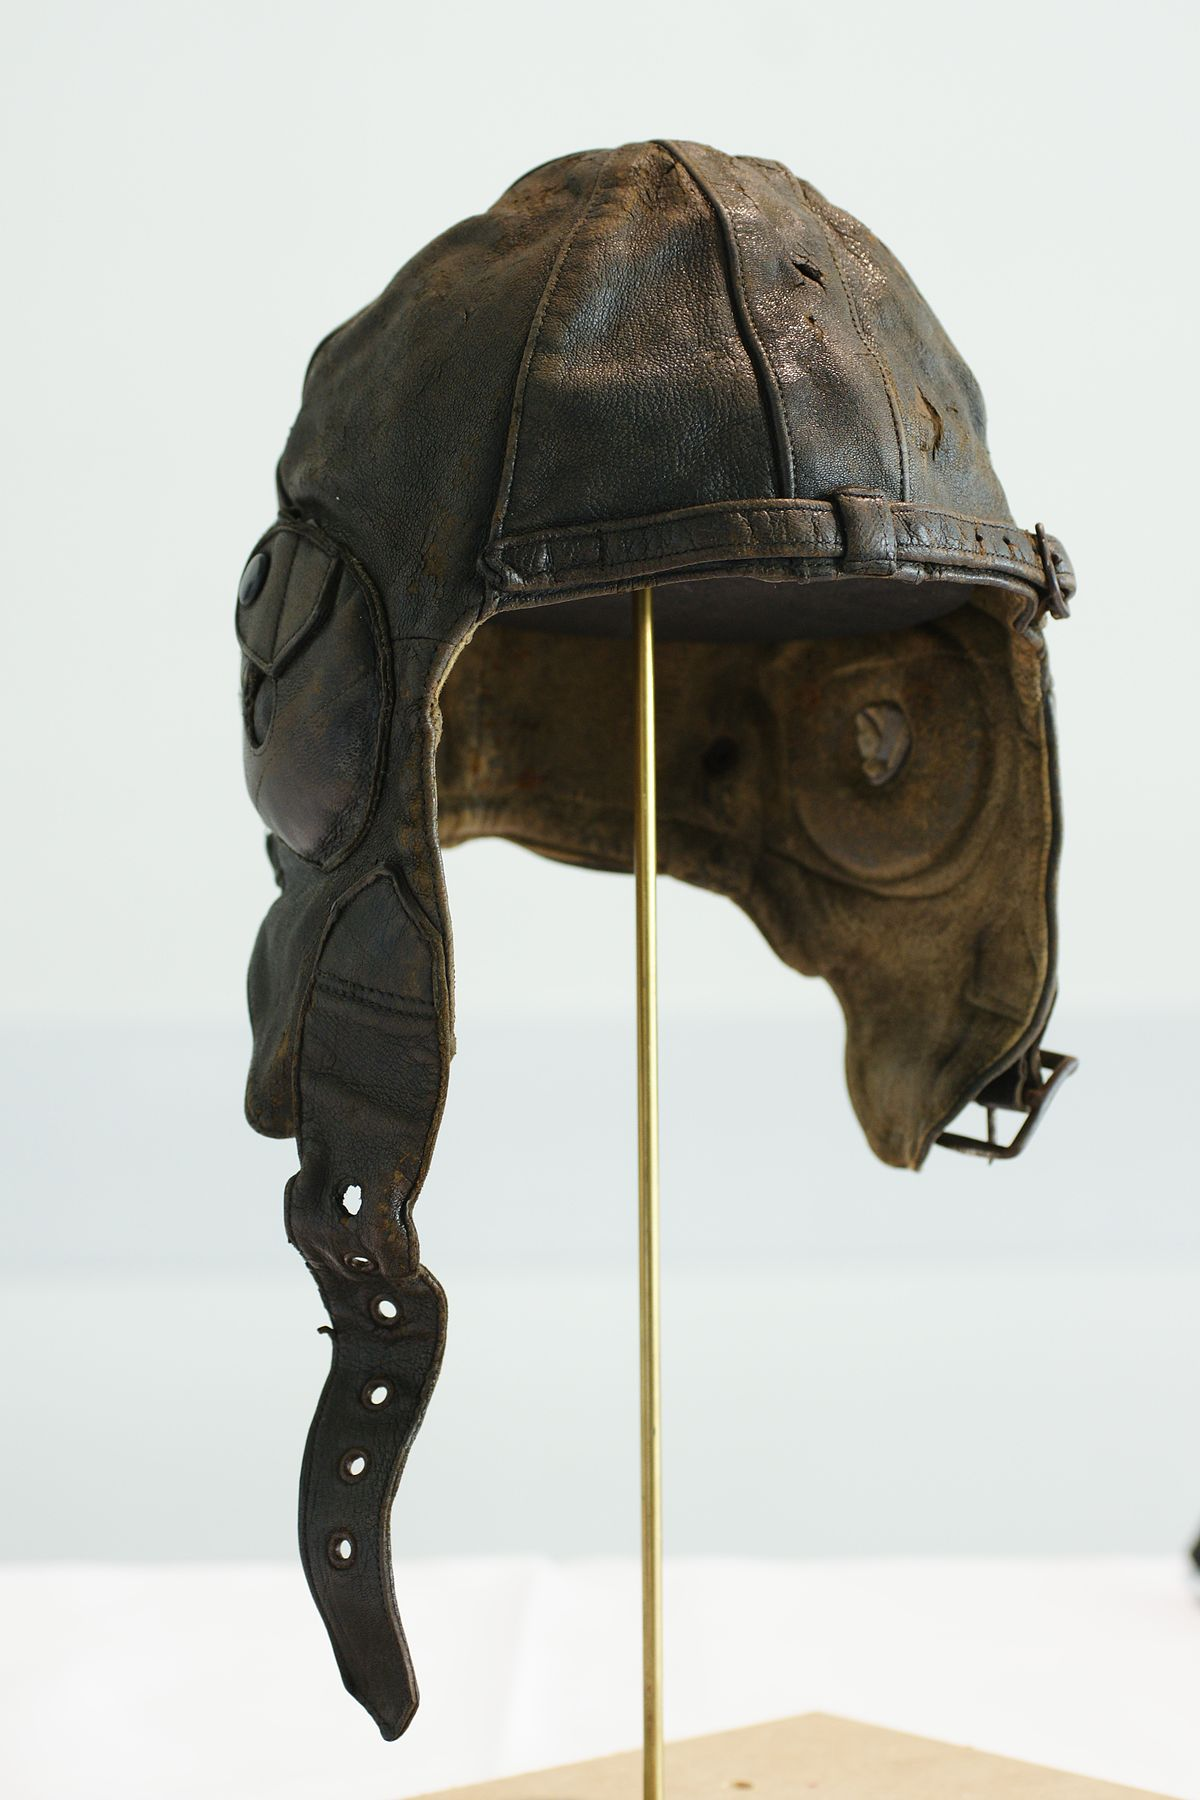 76ac26c372f Leather flying helmet - Wikipedia